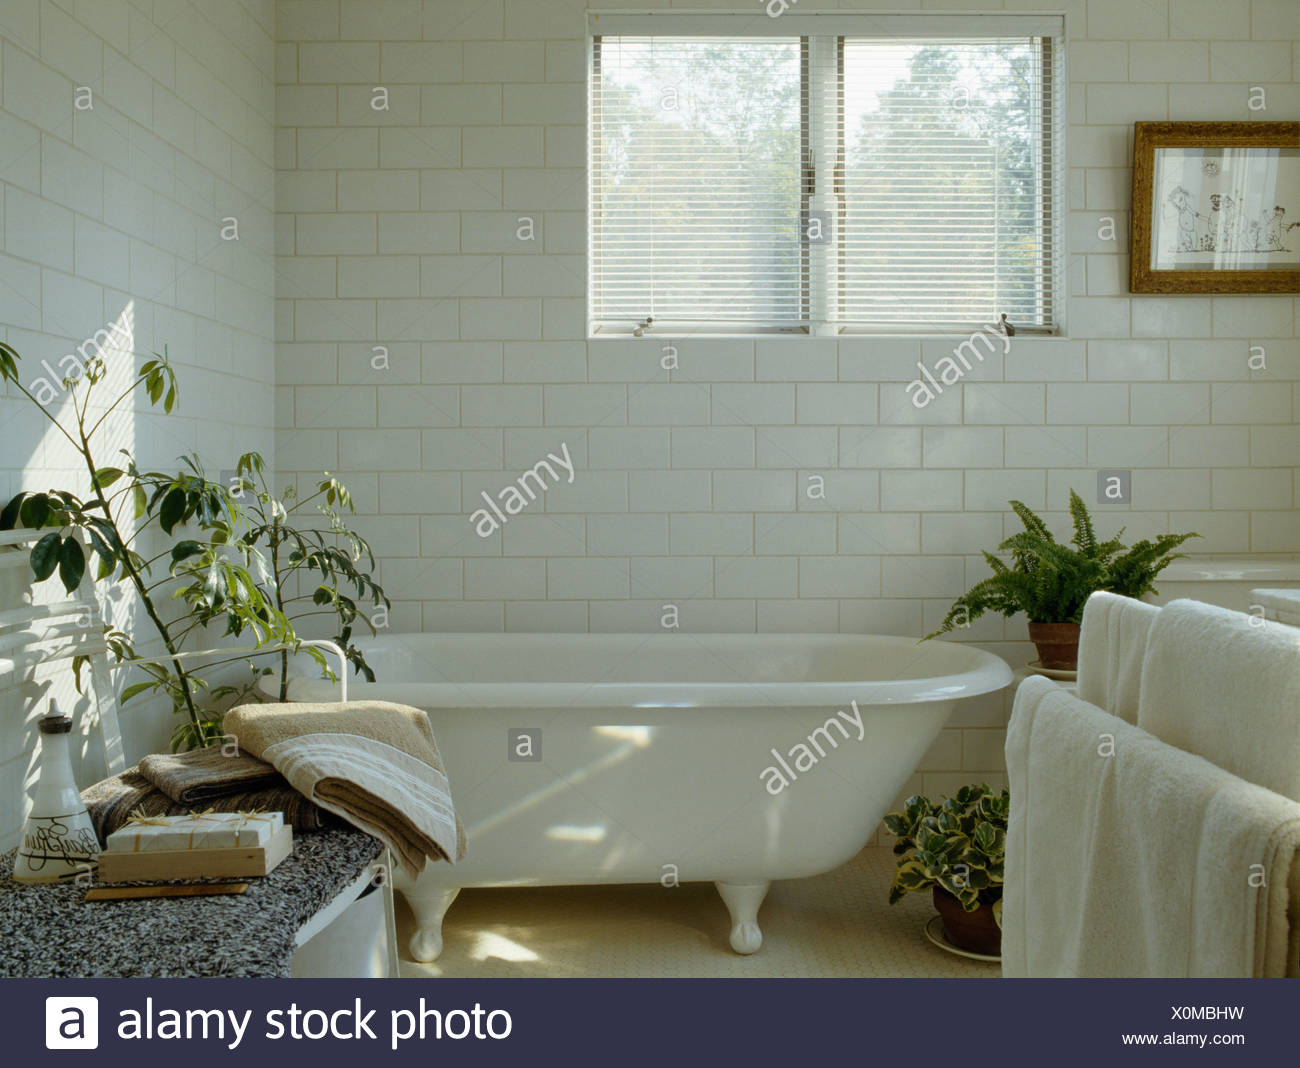 Roll- top bath below window in white country bathroom with white ...